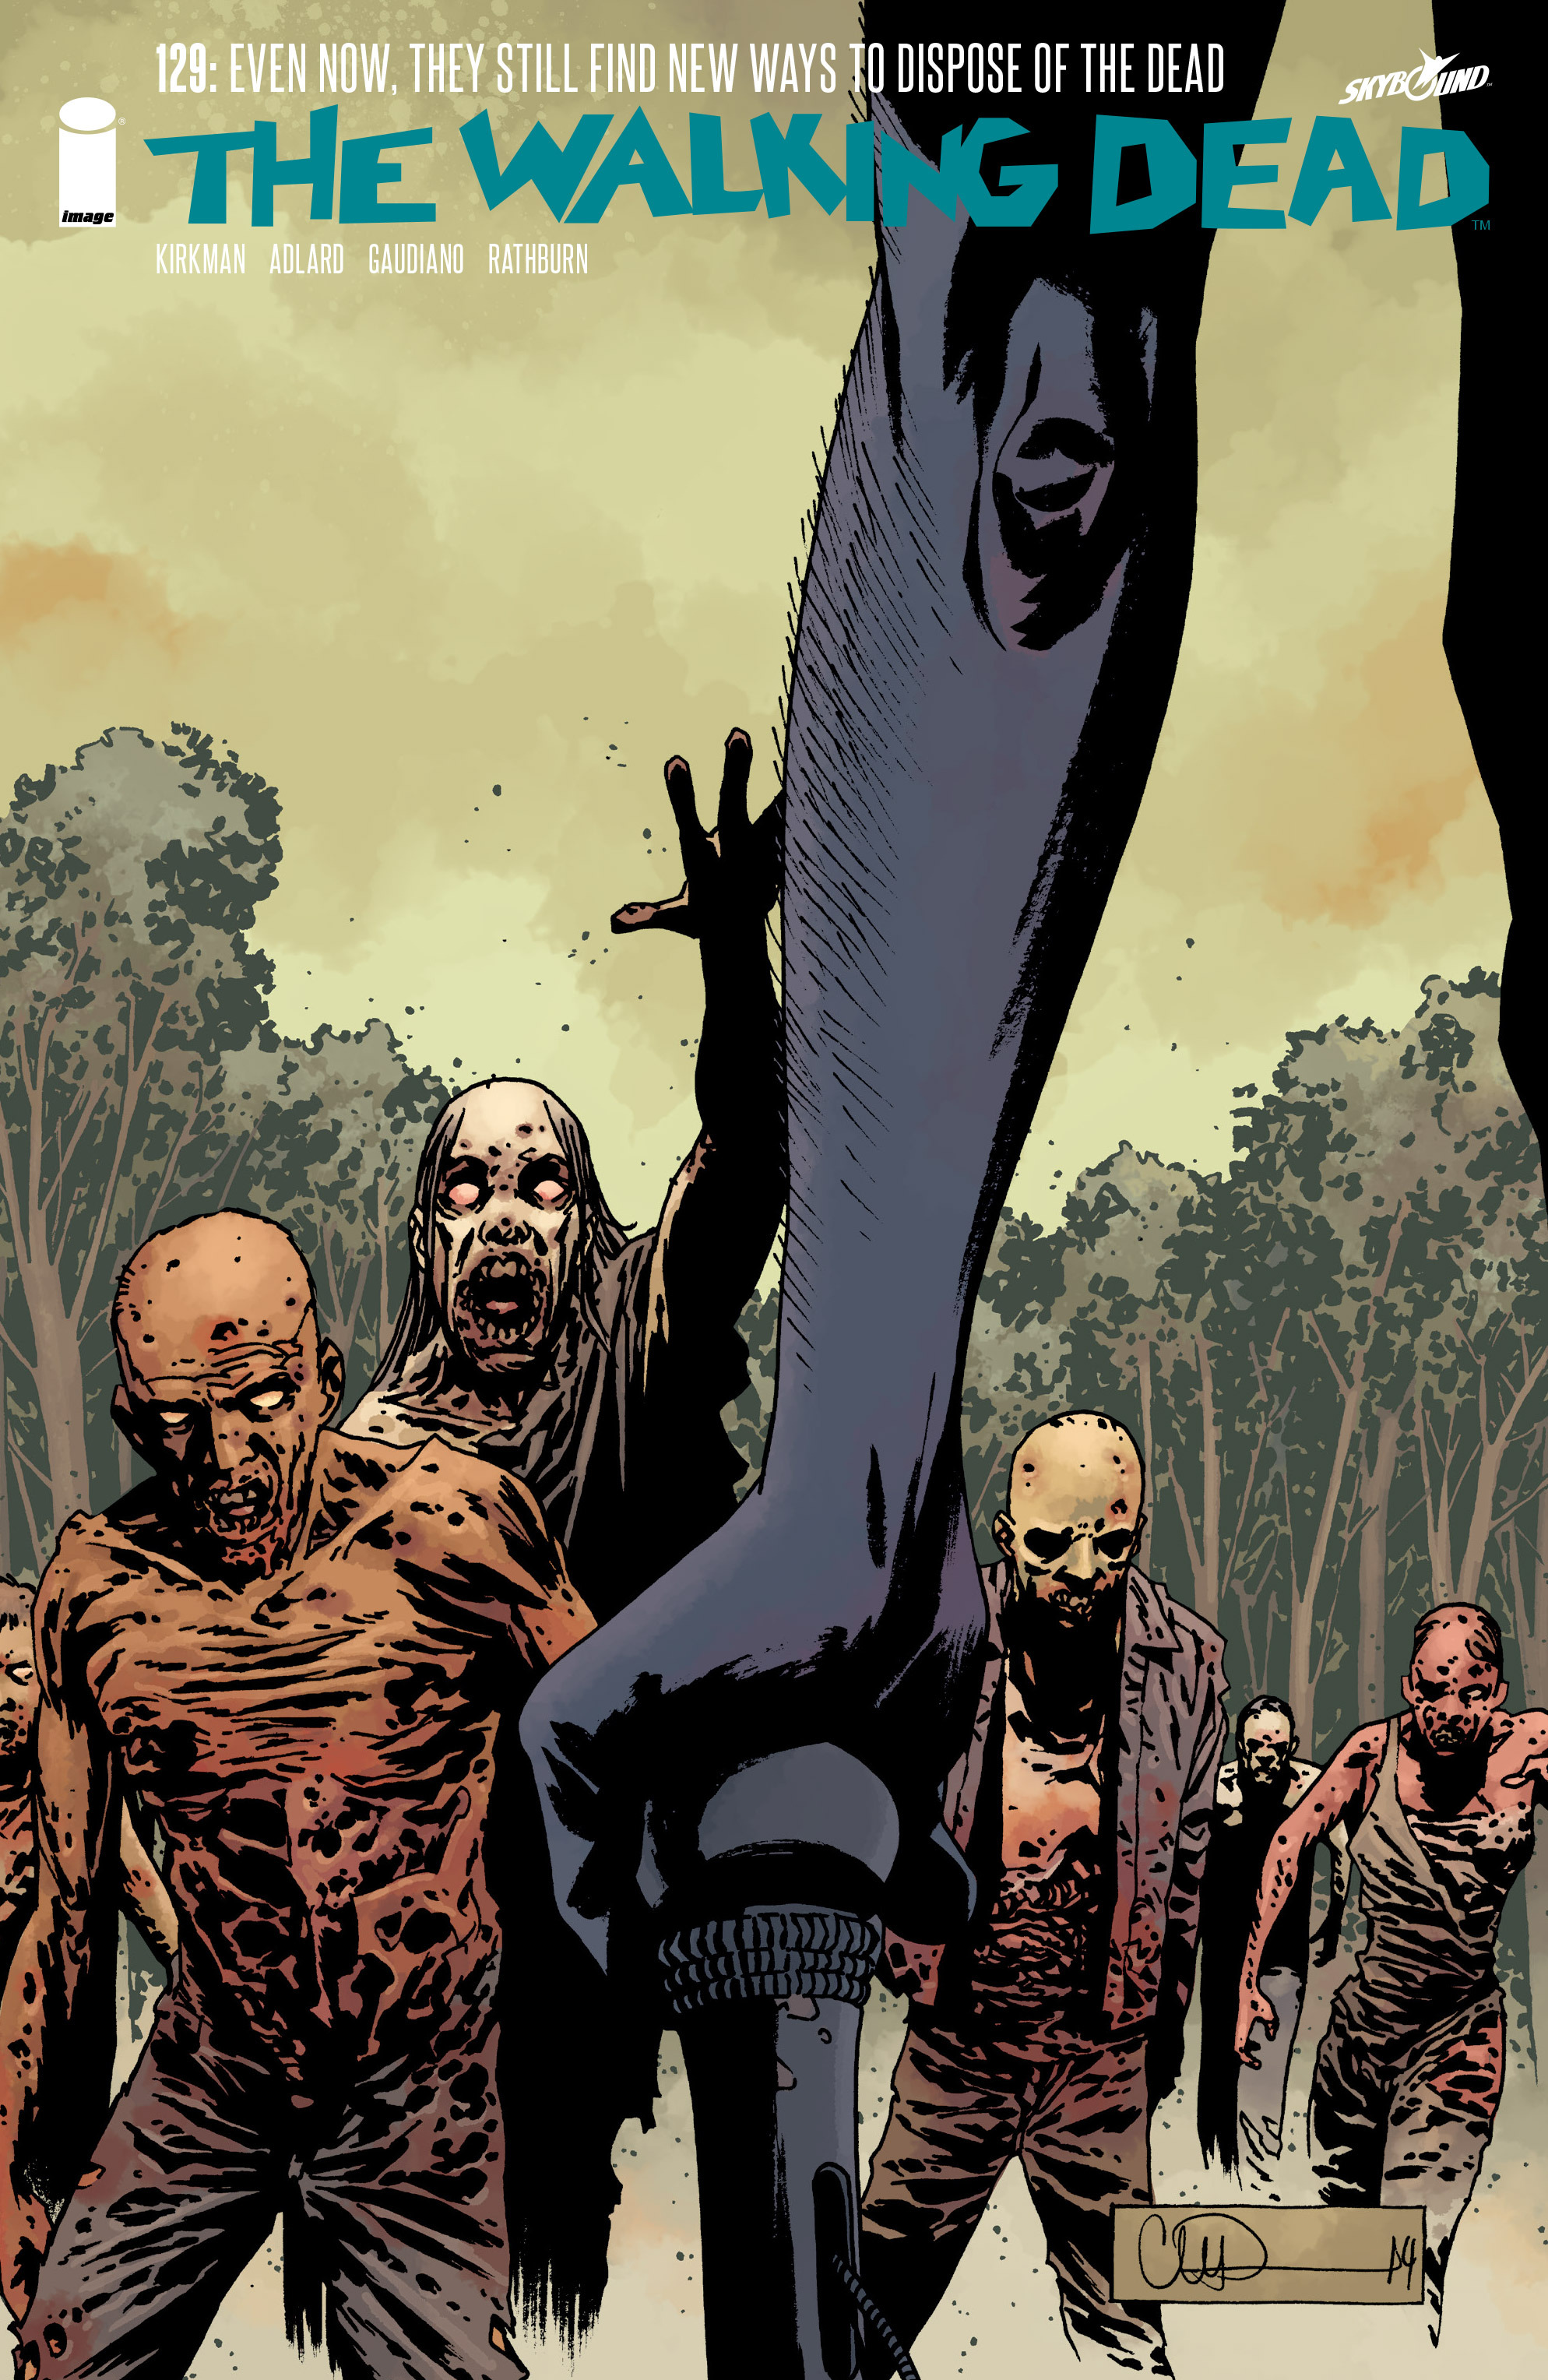 The Walking Dead 129 Page 1